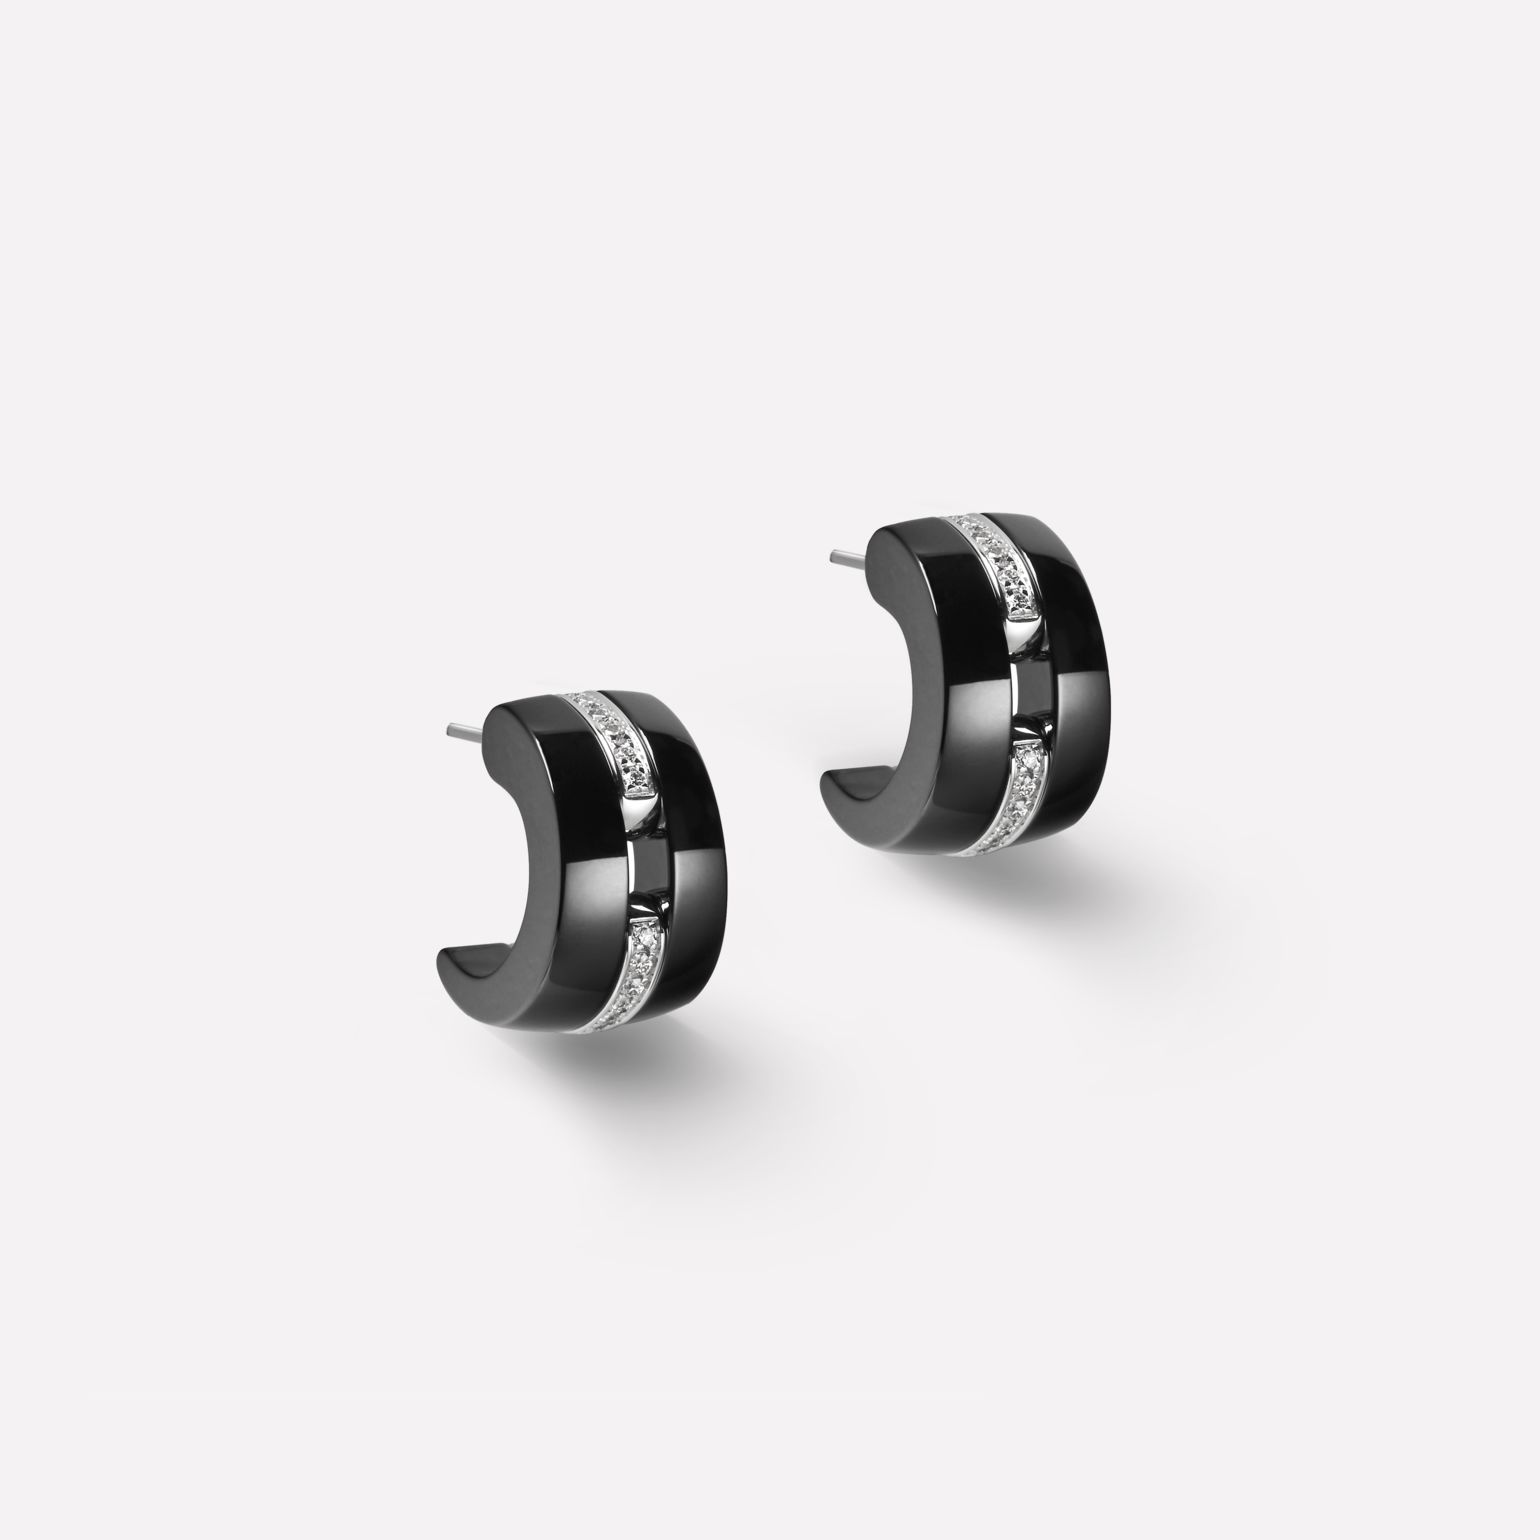 Ultra Earrings Ultra earrings in black ceramic, 18K white gold and diamonds